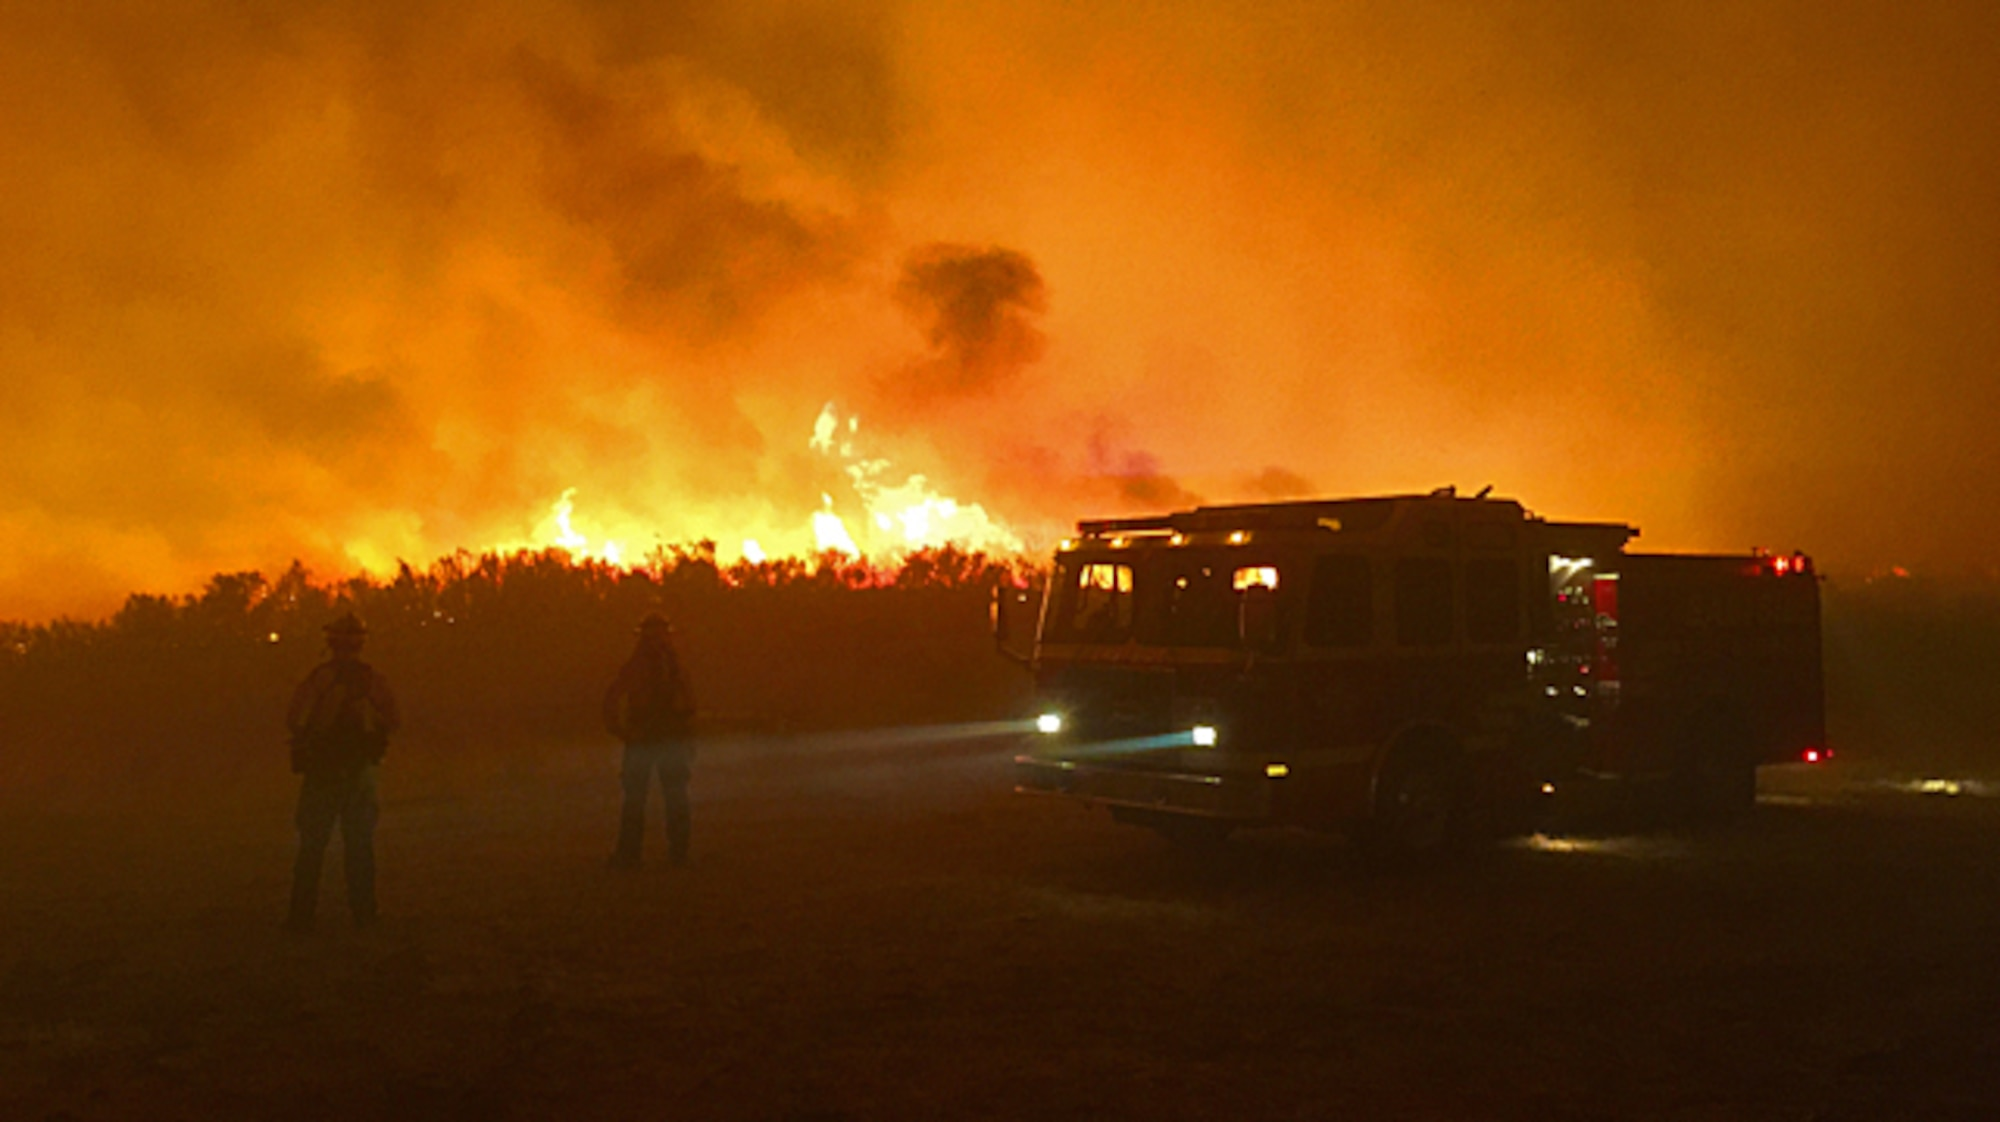 The Okanogan Complex fire in Washington burns Aug. 24, 2015. Task force teams staged at Fairchild Air Force Base, Wash., are assisting in firefighting efforts across the state to include the Okanogan Complex fire following the Type 3 Incident Management team's arrival to the base Aug. 22 to stand up a fire mobilization center. (Courtesy photo)